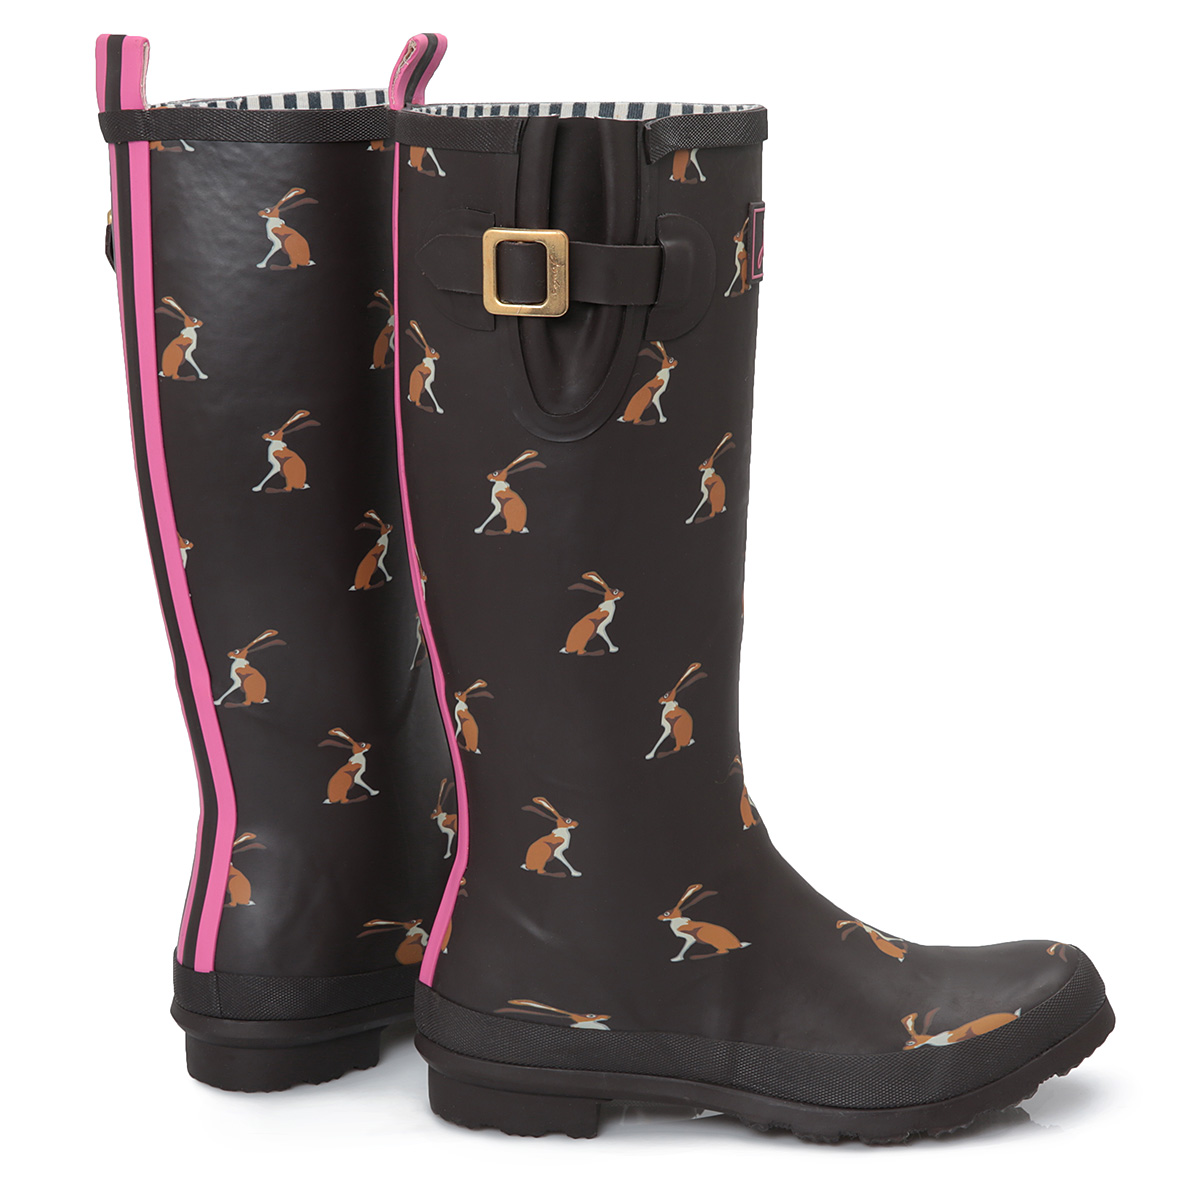 Women's Wellingtons A true icon of British style, the humble welly has reached new heights of popularity. Just as well we offer style-conscious females the widest range of genuine Hunter wellies & boots.